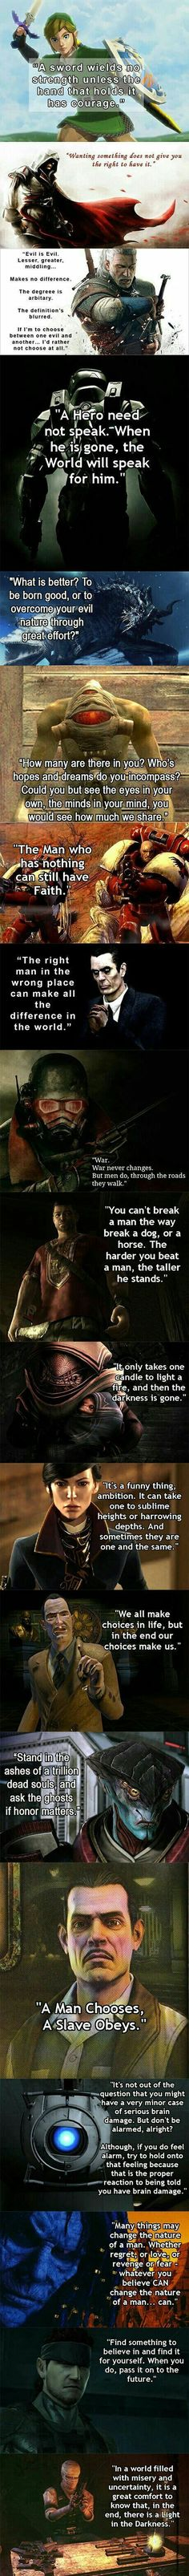 19 Amazing Video Game Quotes | 8 Bit Nerds